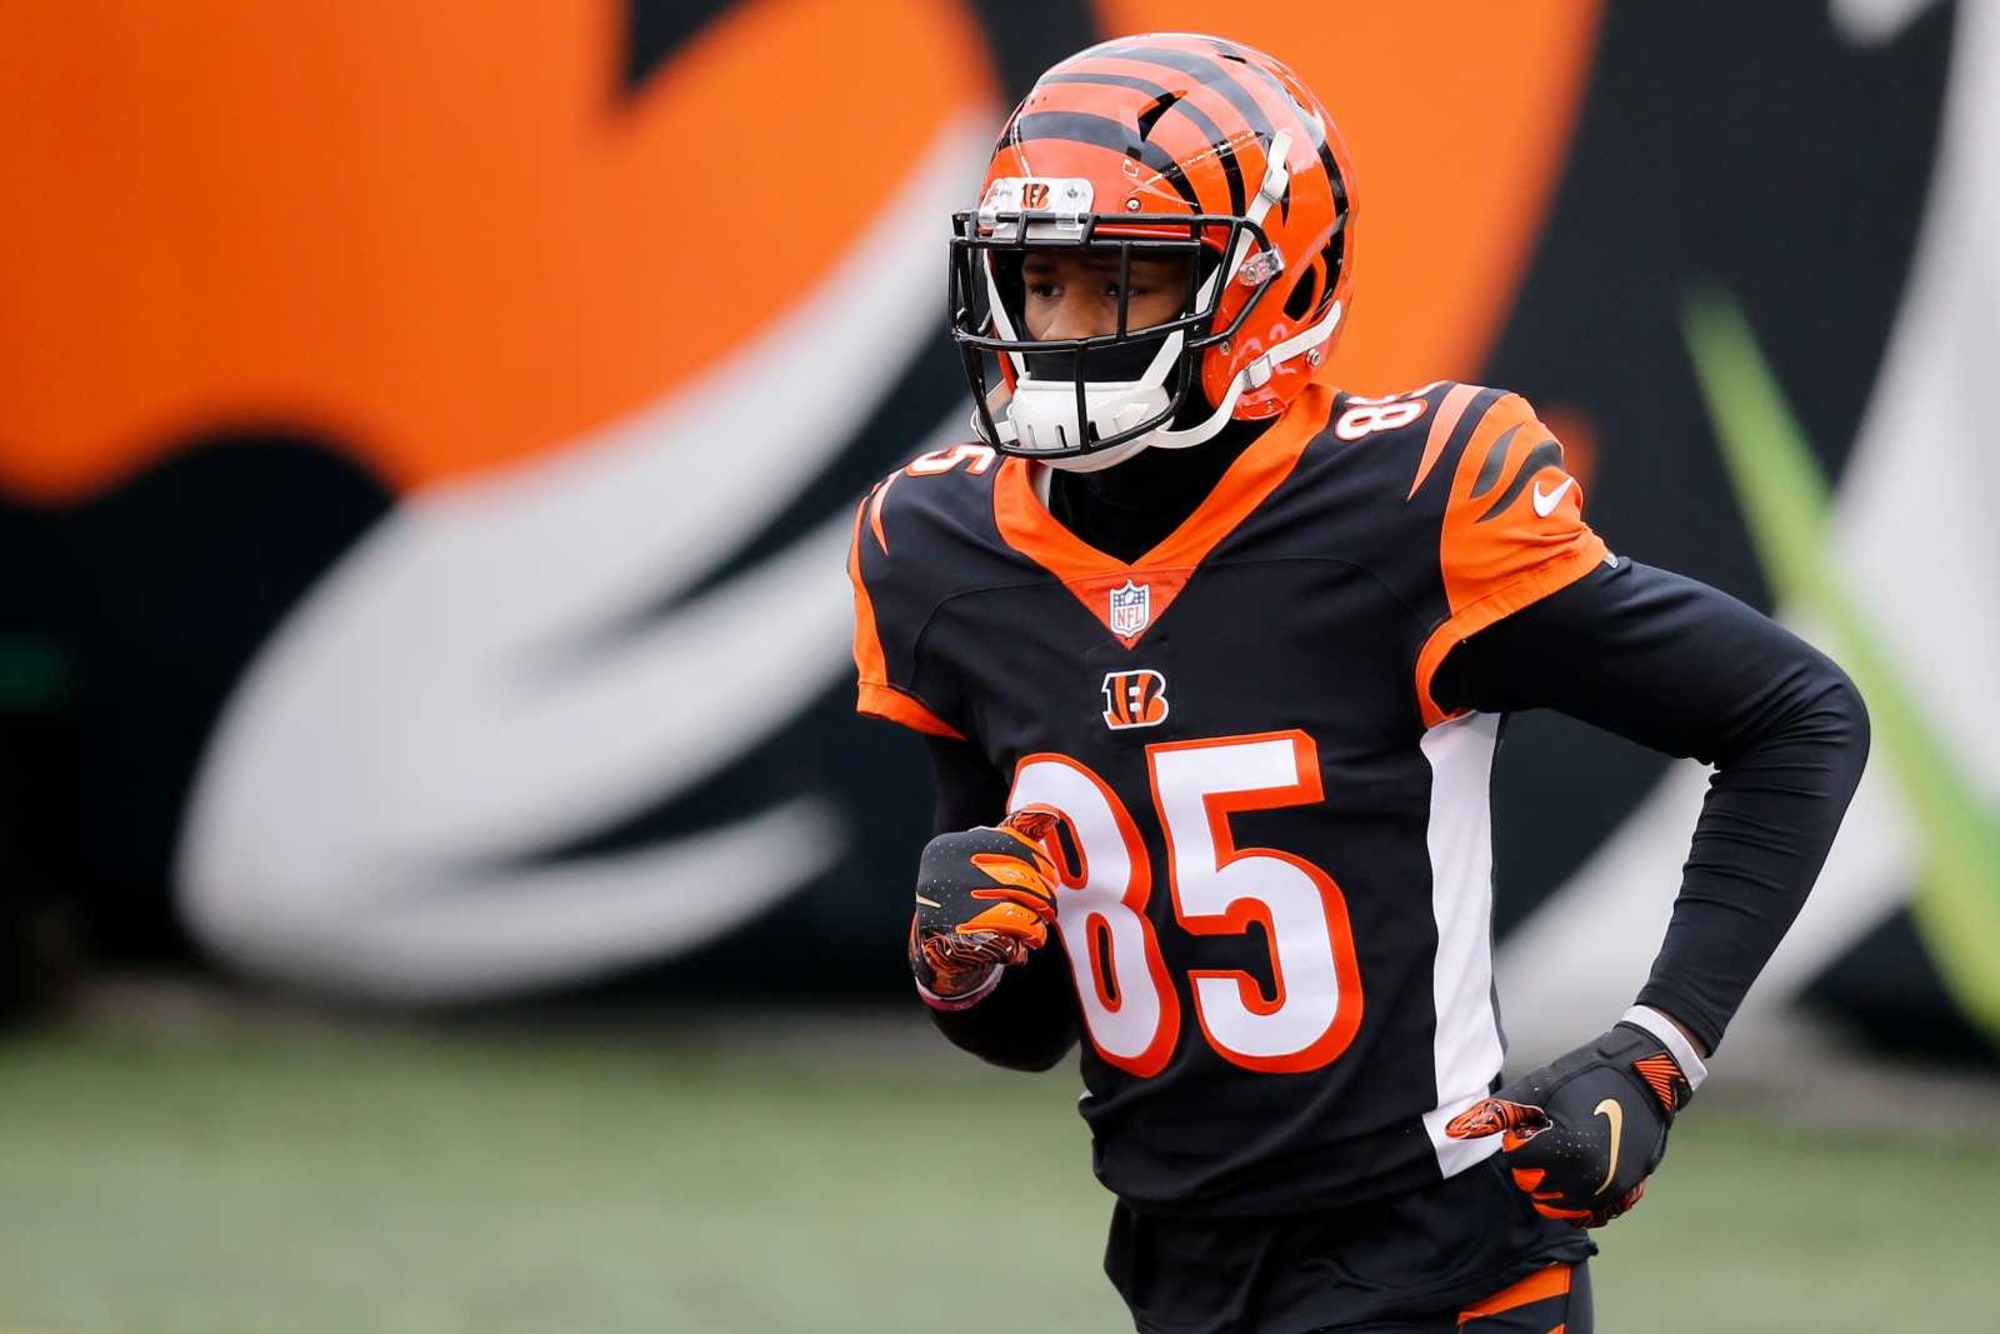 Cincinnati Bengals changing numbers and stripes